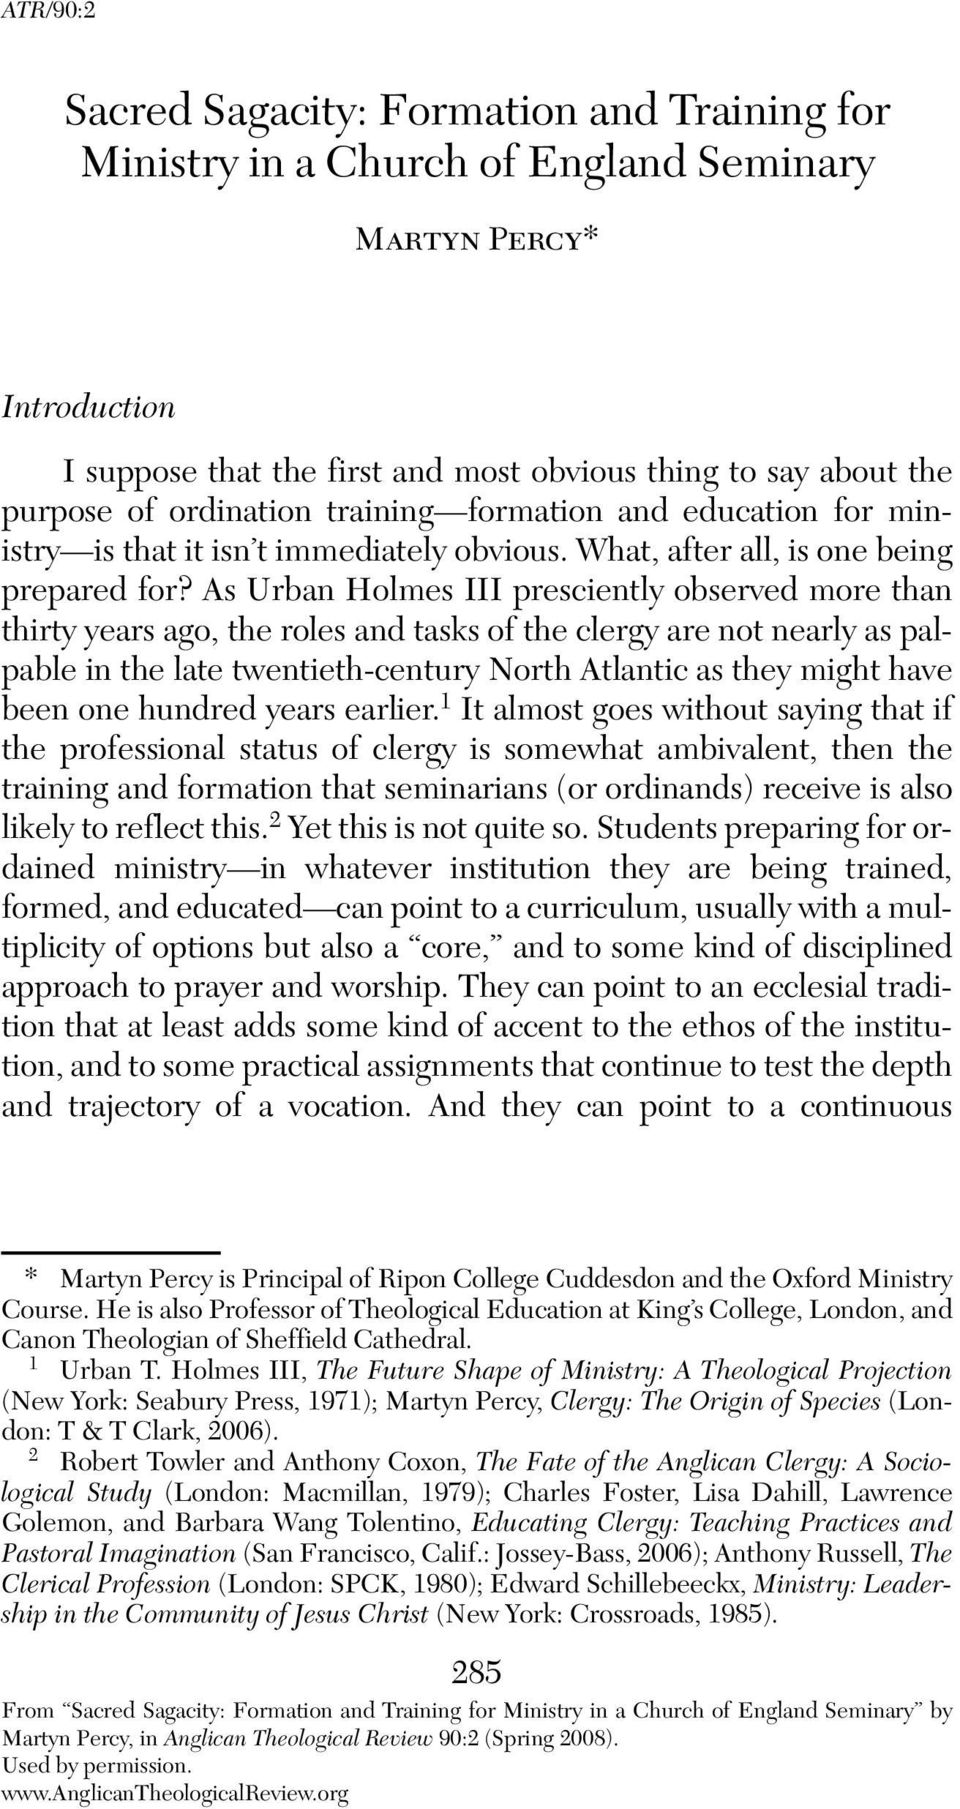 As Urban Holmes III presciently observed more than thirty years ago, the roles and tasks of the clergy are not nearly as palpable in the late twentieth-century North Atlantic as they might have been